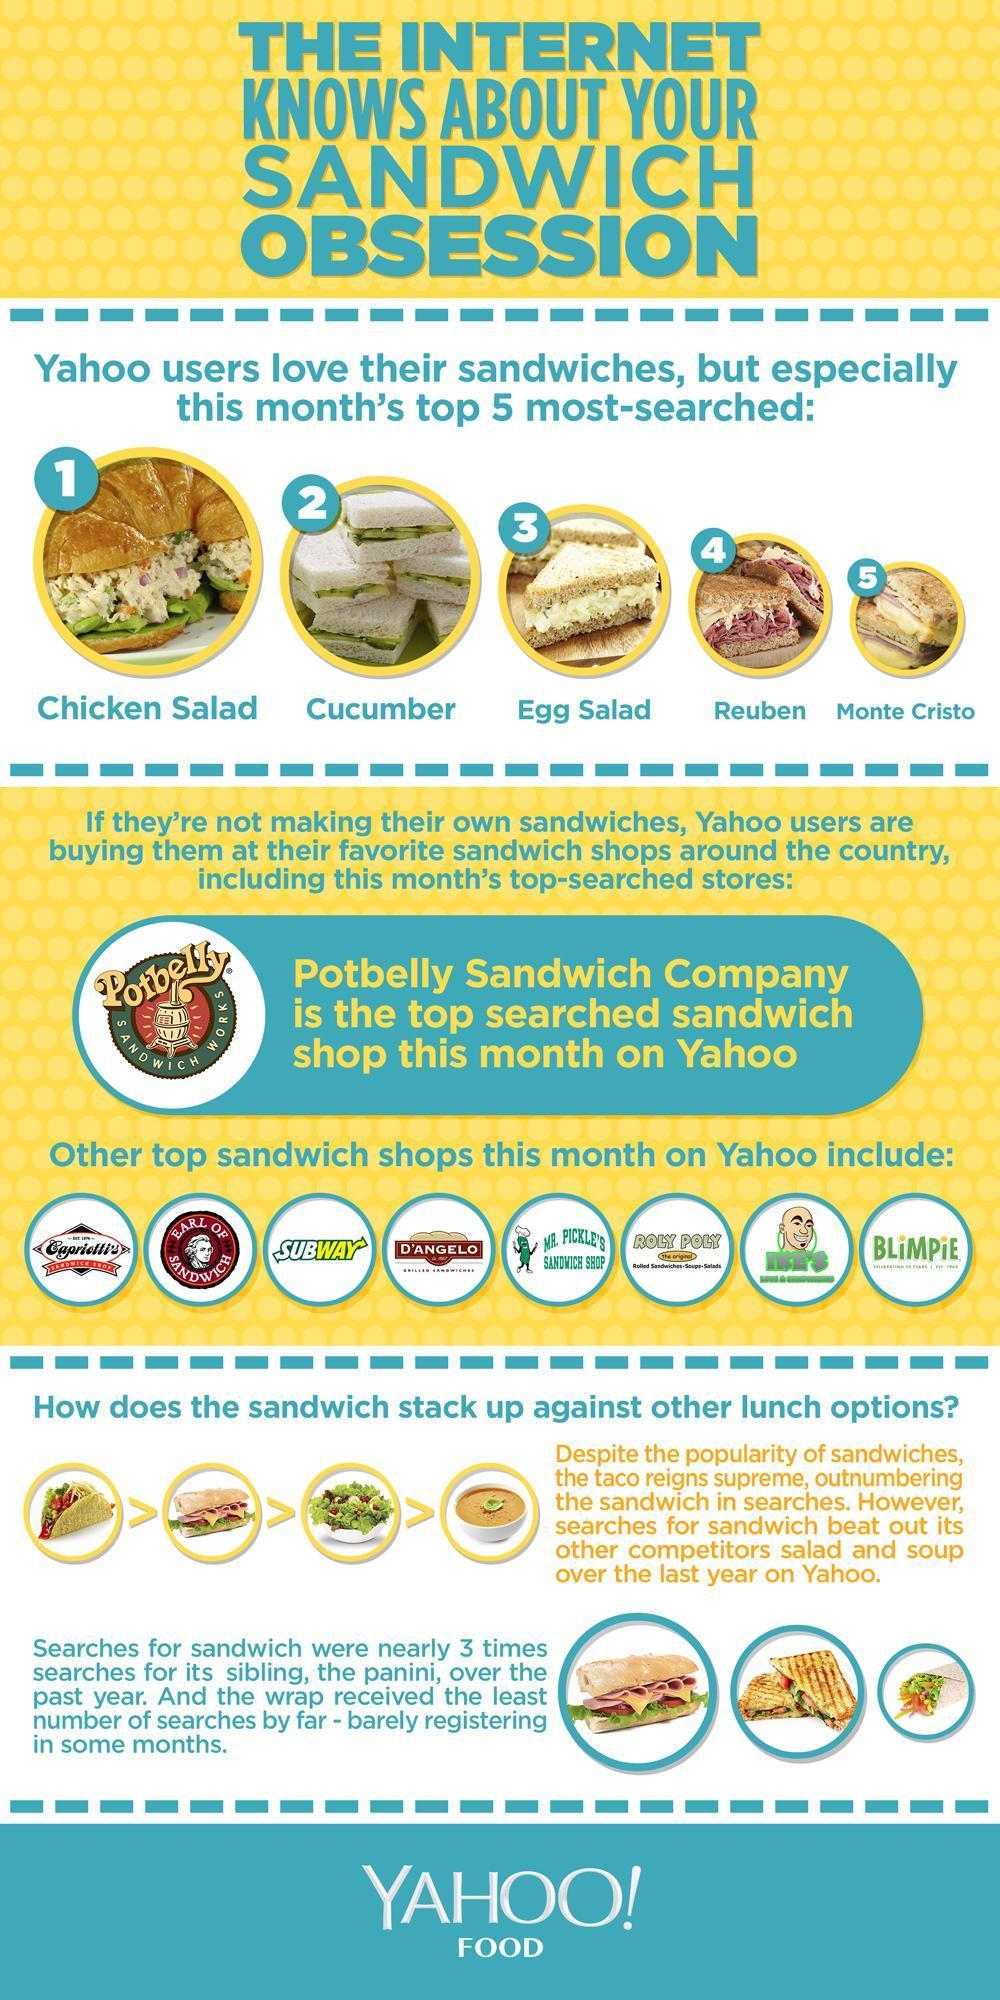 The Internet Knows About Your Sandwich Obsession